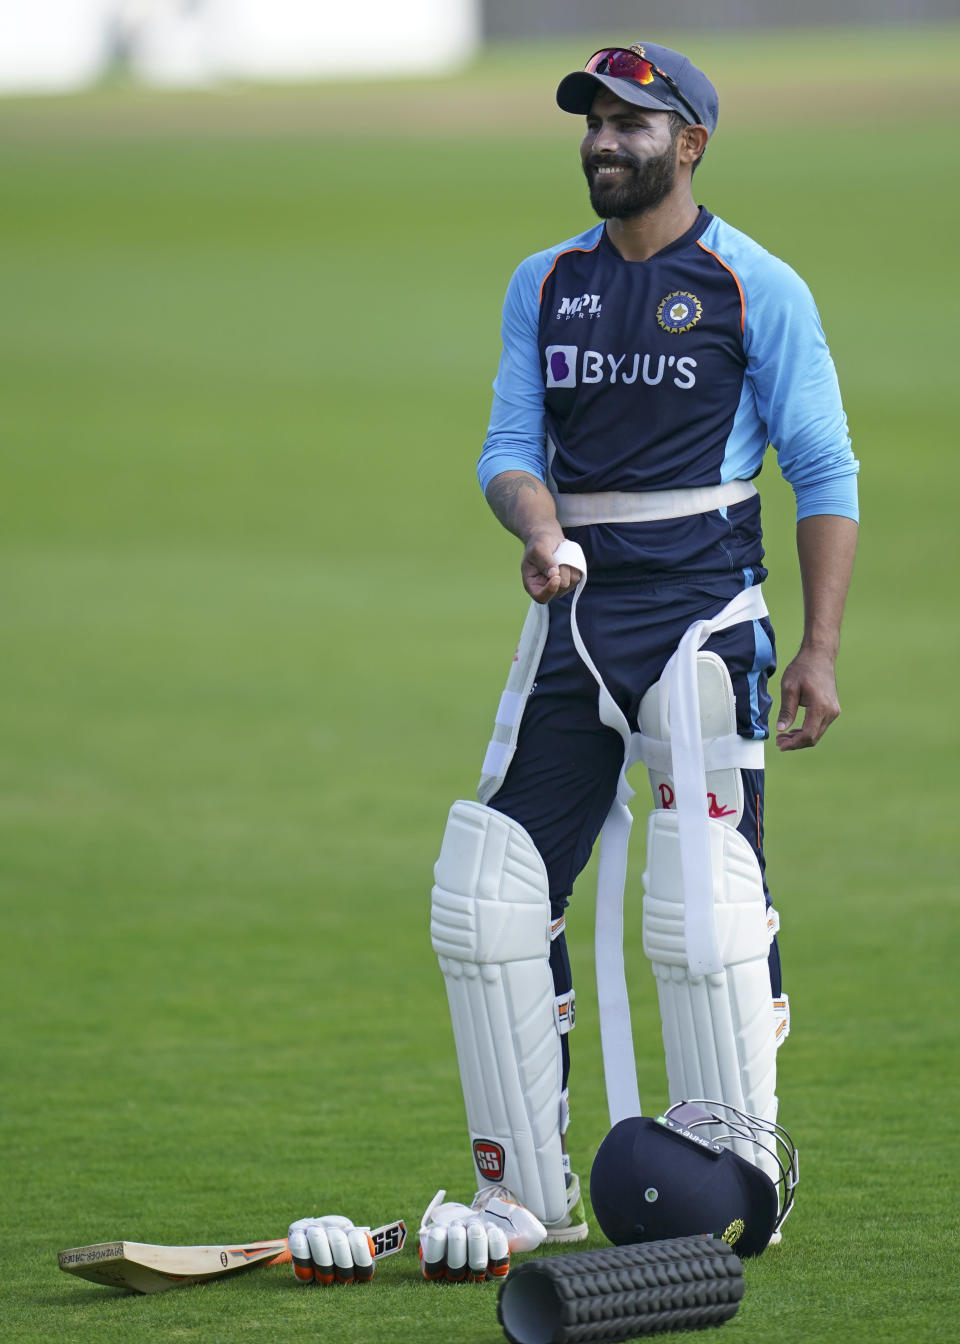 India's Ravindra Jadeja prepares to bat during a nets session at Headingley cricket ground in Leeds, England, Monday, Aug. 23, 2021, ahead of the 3rd Test cricket match between England and India. (AP Photo/Jon Super)